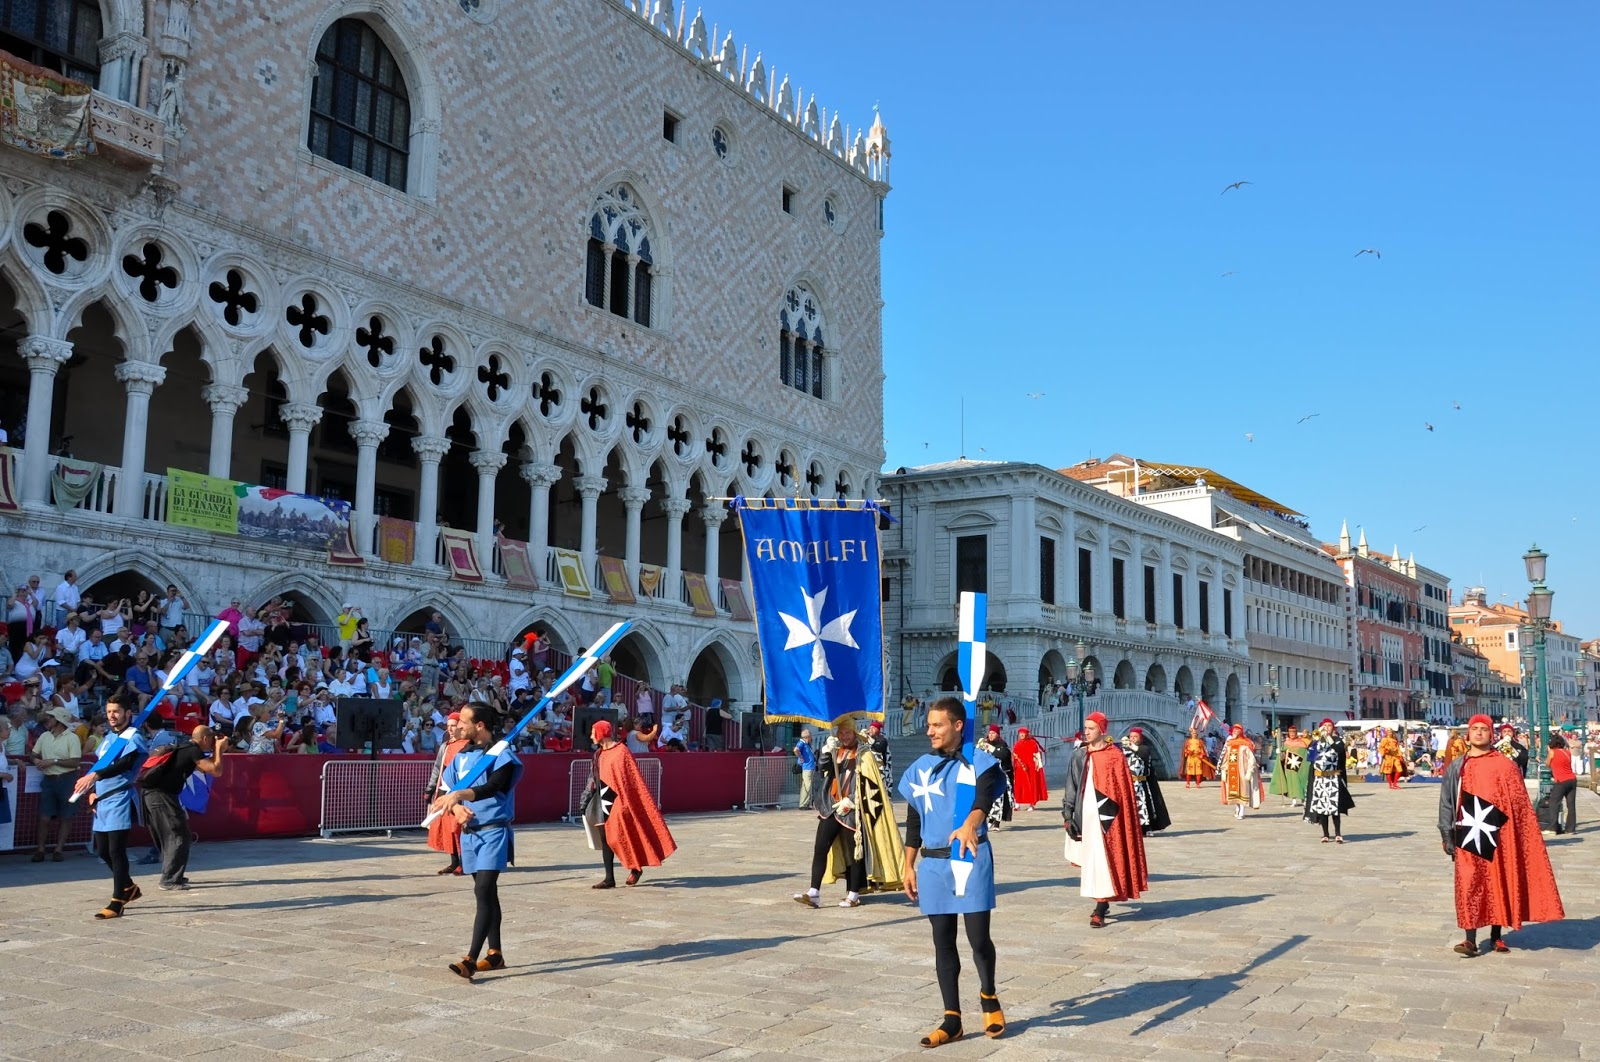 Amalfi's representatives, Historical Parade, Regatta of the Ancient Maritime Republics, Venice, Italy